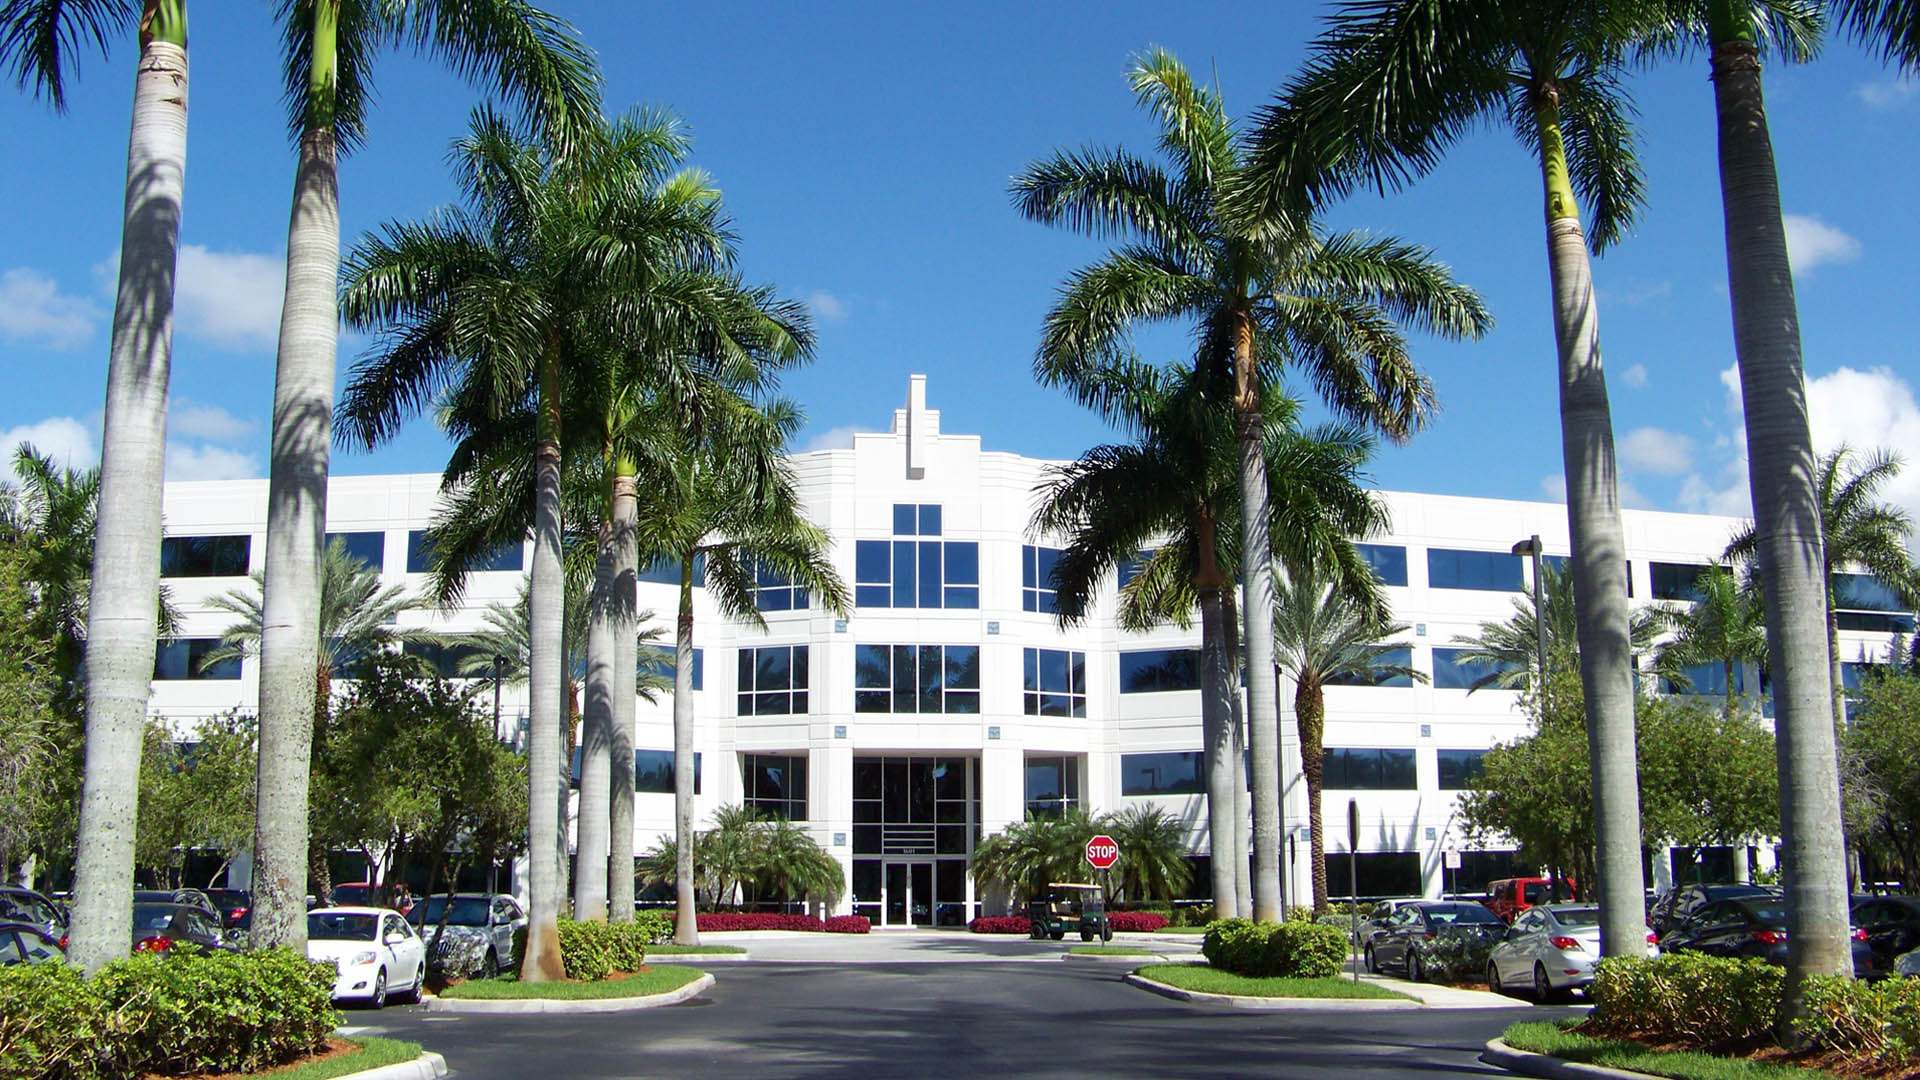 Commercial property in Davie, FL maintained by BTS Land Services Corp.